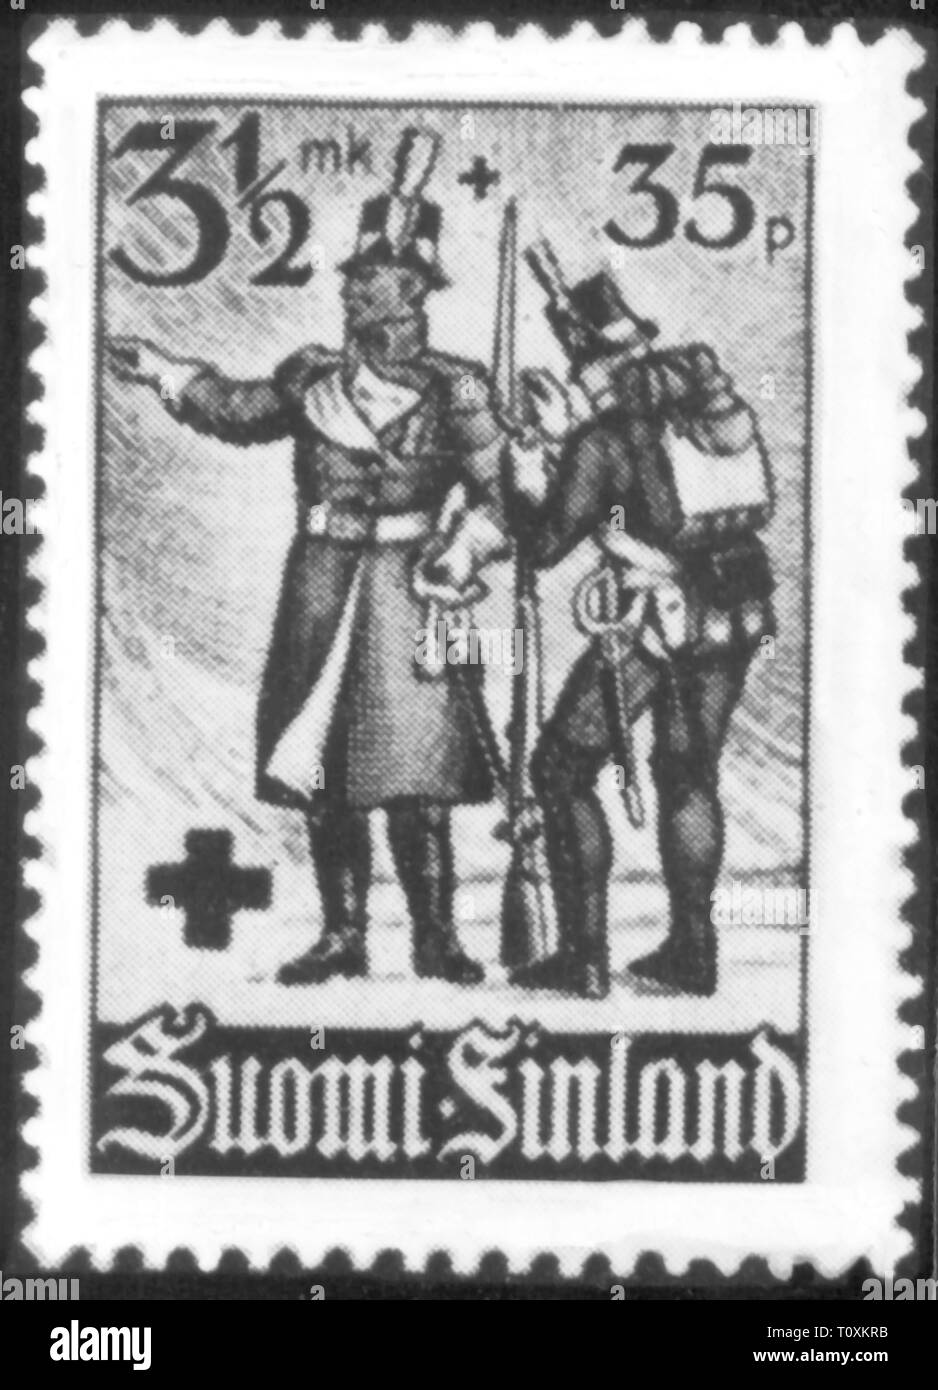 mail, postage stamps, Finland, 3 1/2 markka + 35 penniae special issue, in favour of the Red Cross, series Finnish soldiers in the course of the centuries, date of issue: 26.1.1940 Finnish markka, Finnmark, pfennig, penny, Pfennigs, military, propaganda, Soviet - Finnish war, winter war, Second World War / WWII, people, 20th century, 1940s, mail, post, postage stamps, postage stamp, cross, crosses, soldiers, soldier, historic, historical, pennia, penniä, Additional-Rights-Clearance-Info-Not-Available - Stock Image